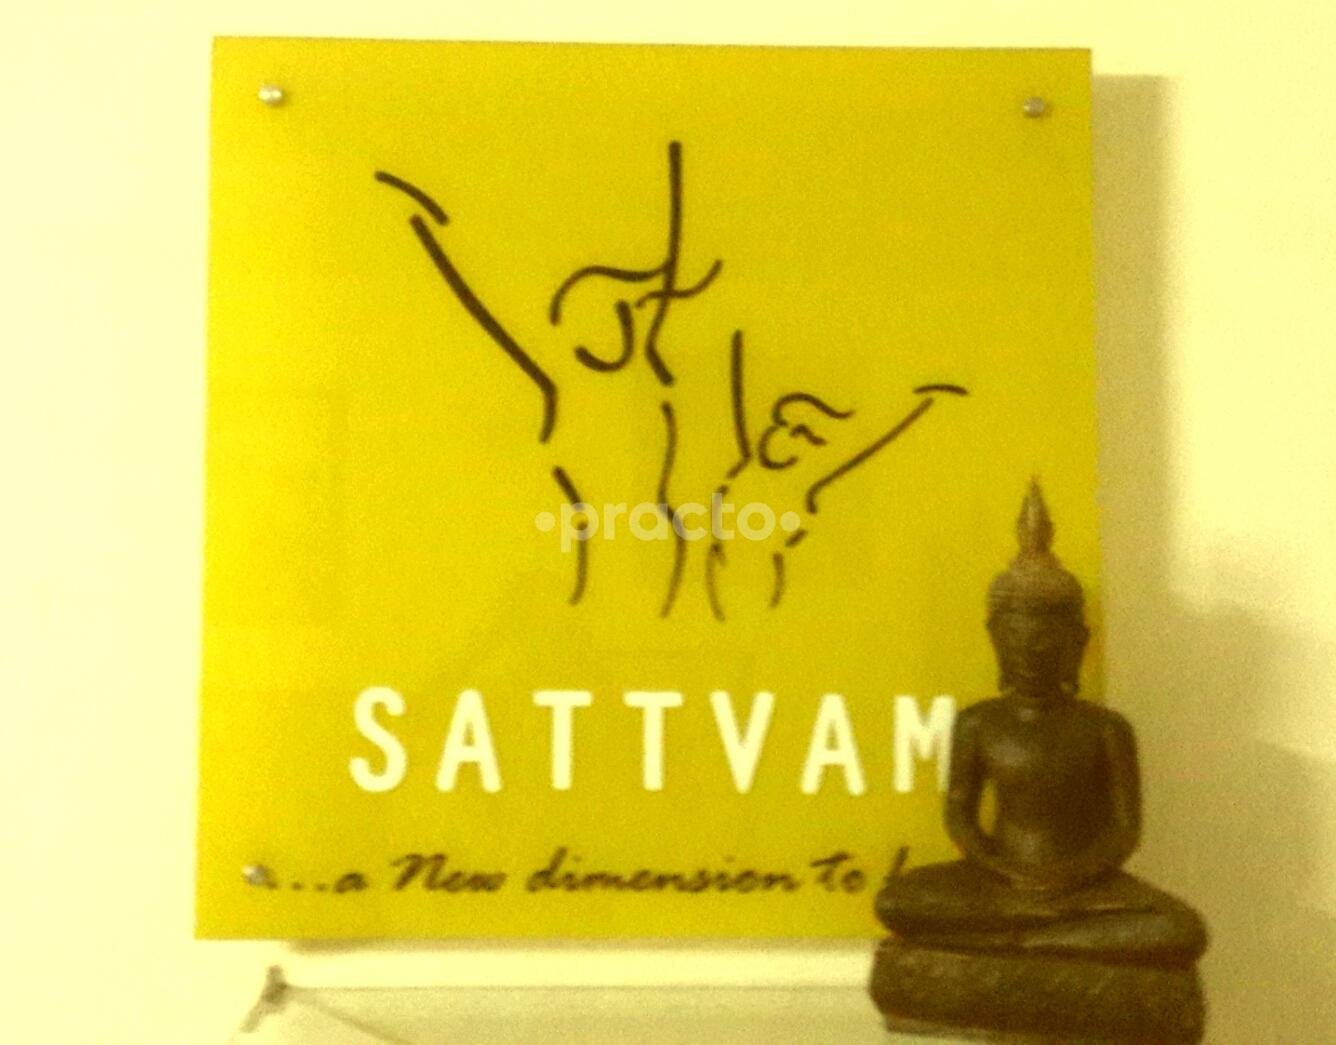 Sattvam's Super Speciality Homeopathy